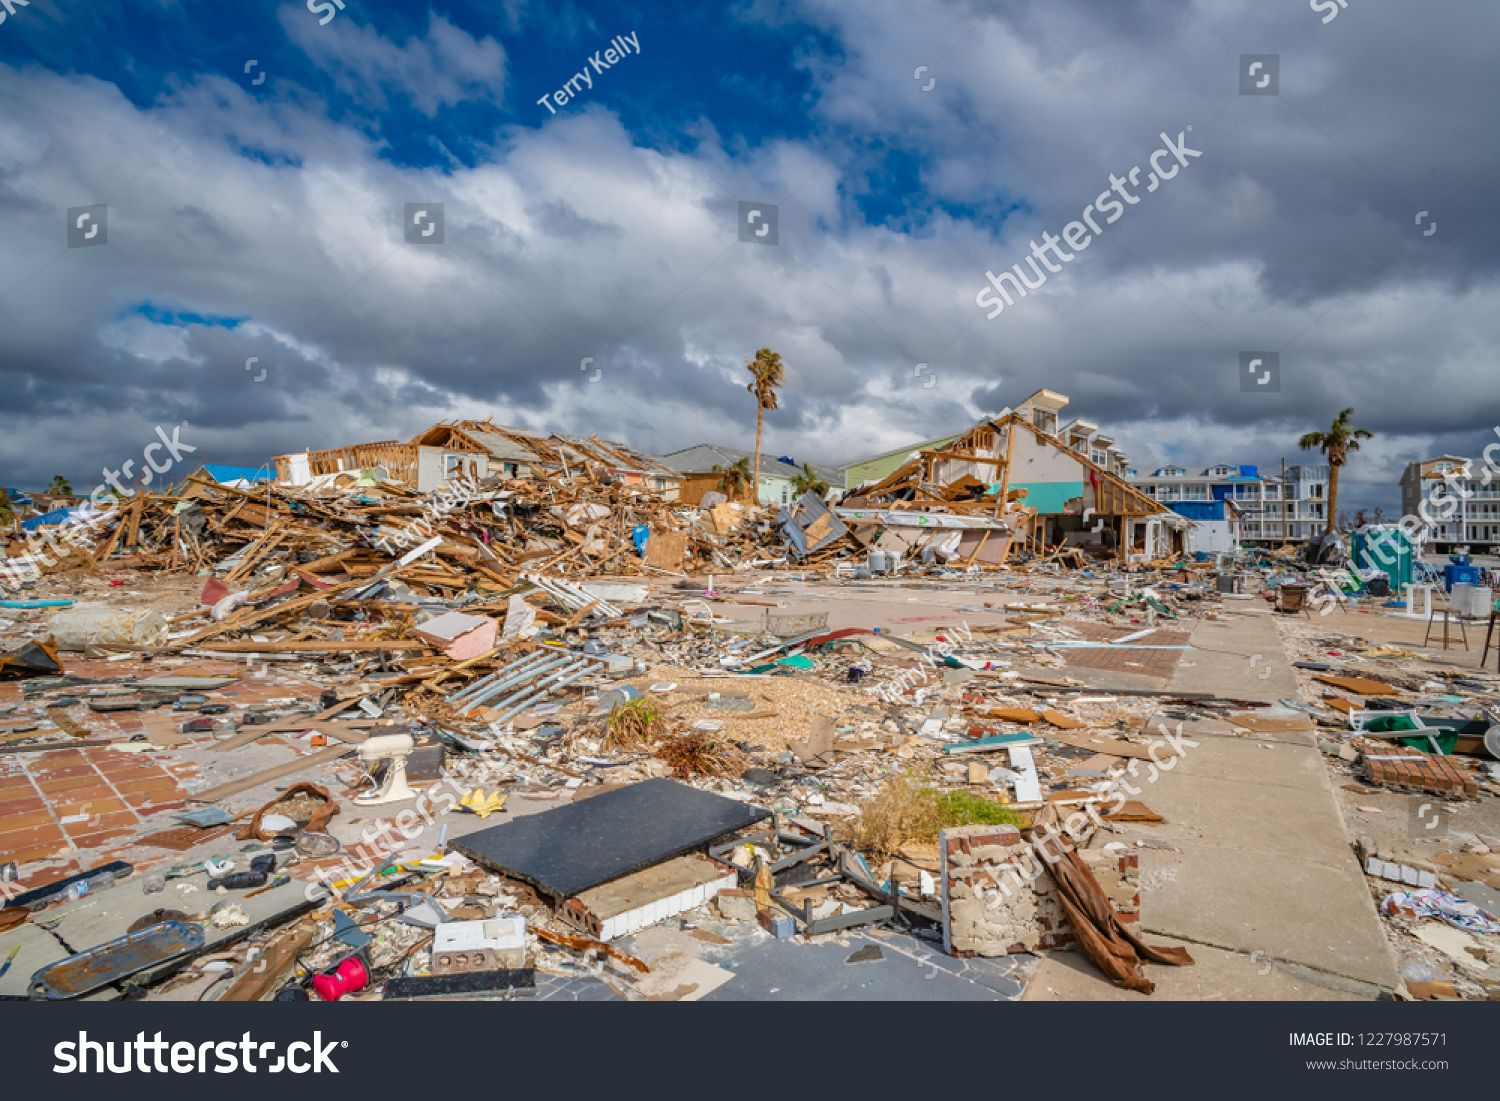 Mexico Beach Florida United States October 26 2018 16 Days After Hurricane Michael The Mexico Beach Publ Mexico Beach Florida Mexico Beach Florida Beaches